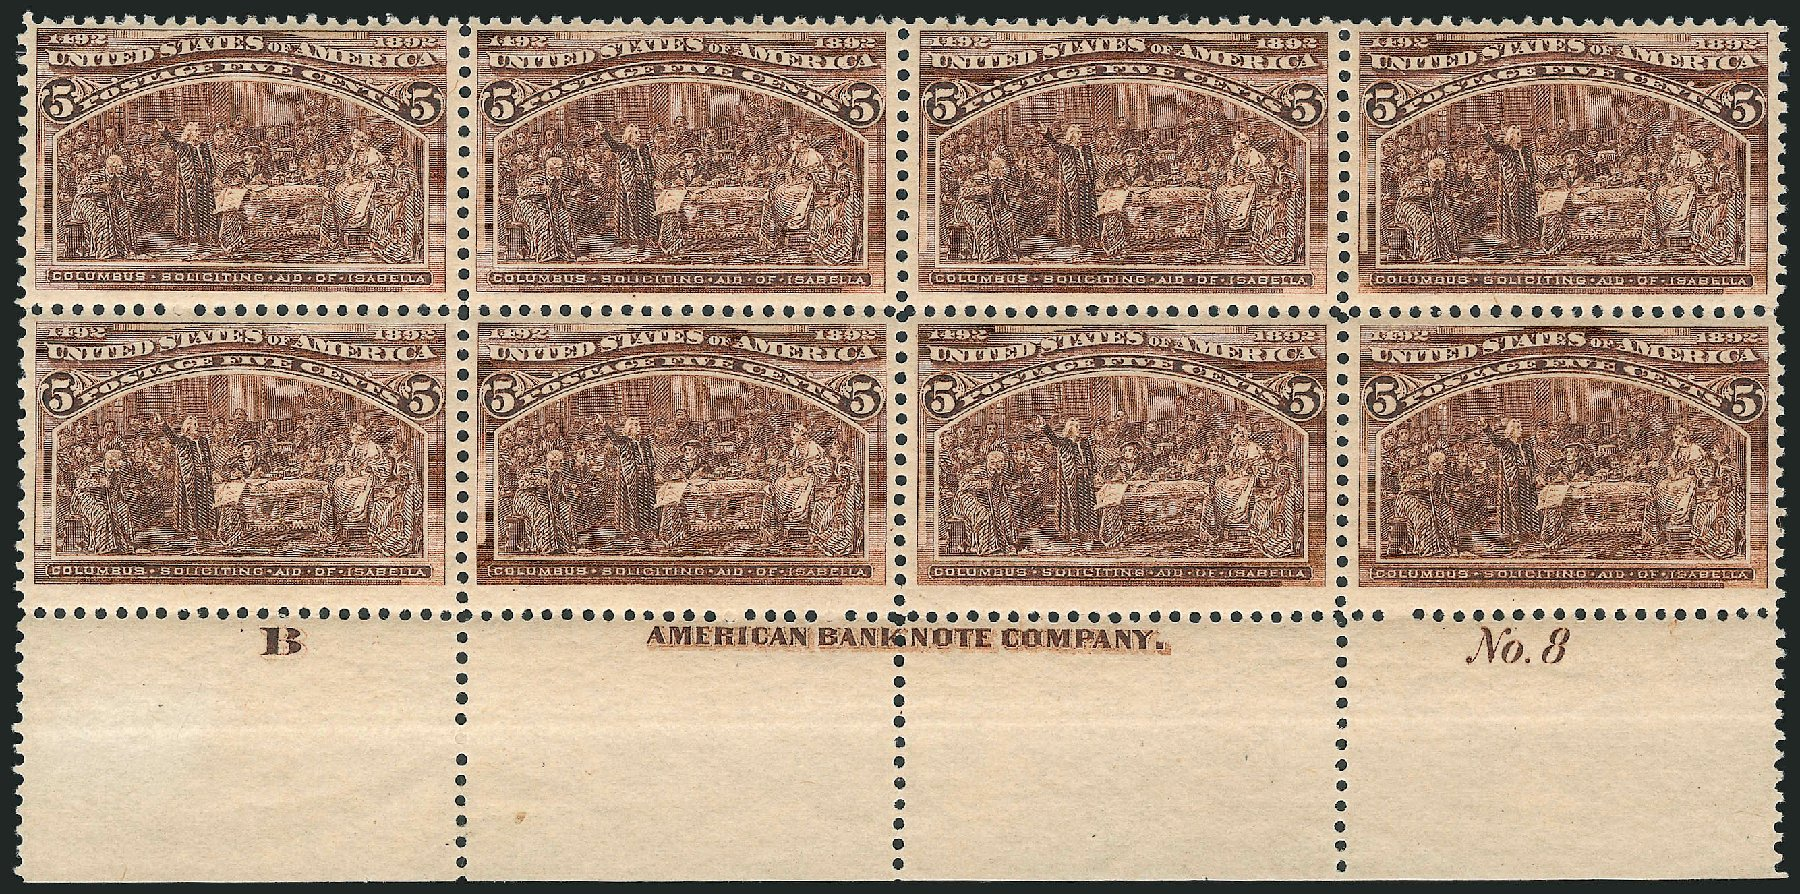 US Stamp Values Scott Cat. #234 - 1893 5c Columbian Exposition. Robert Siegel Auction Galleries, Feb 2015, Sale 1092, Lot 1173